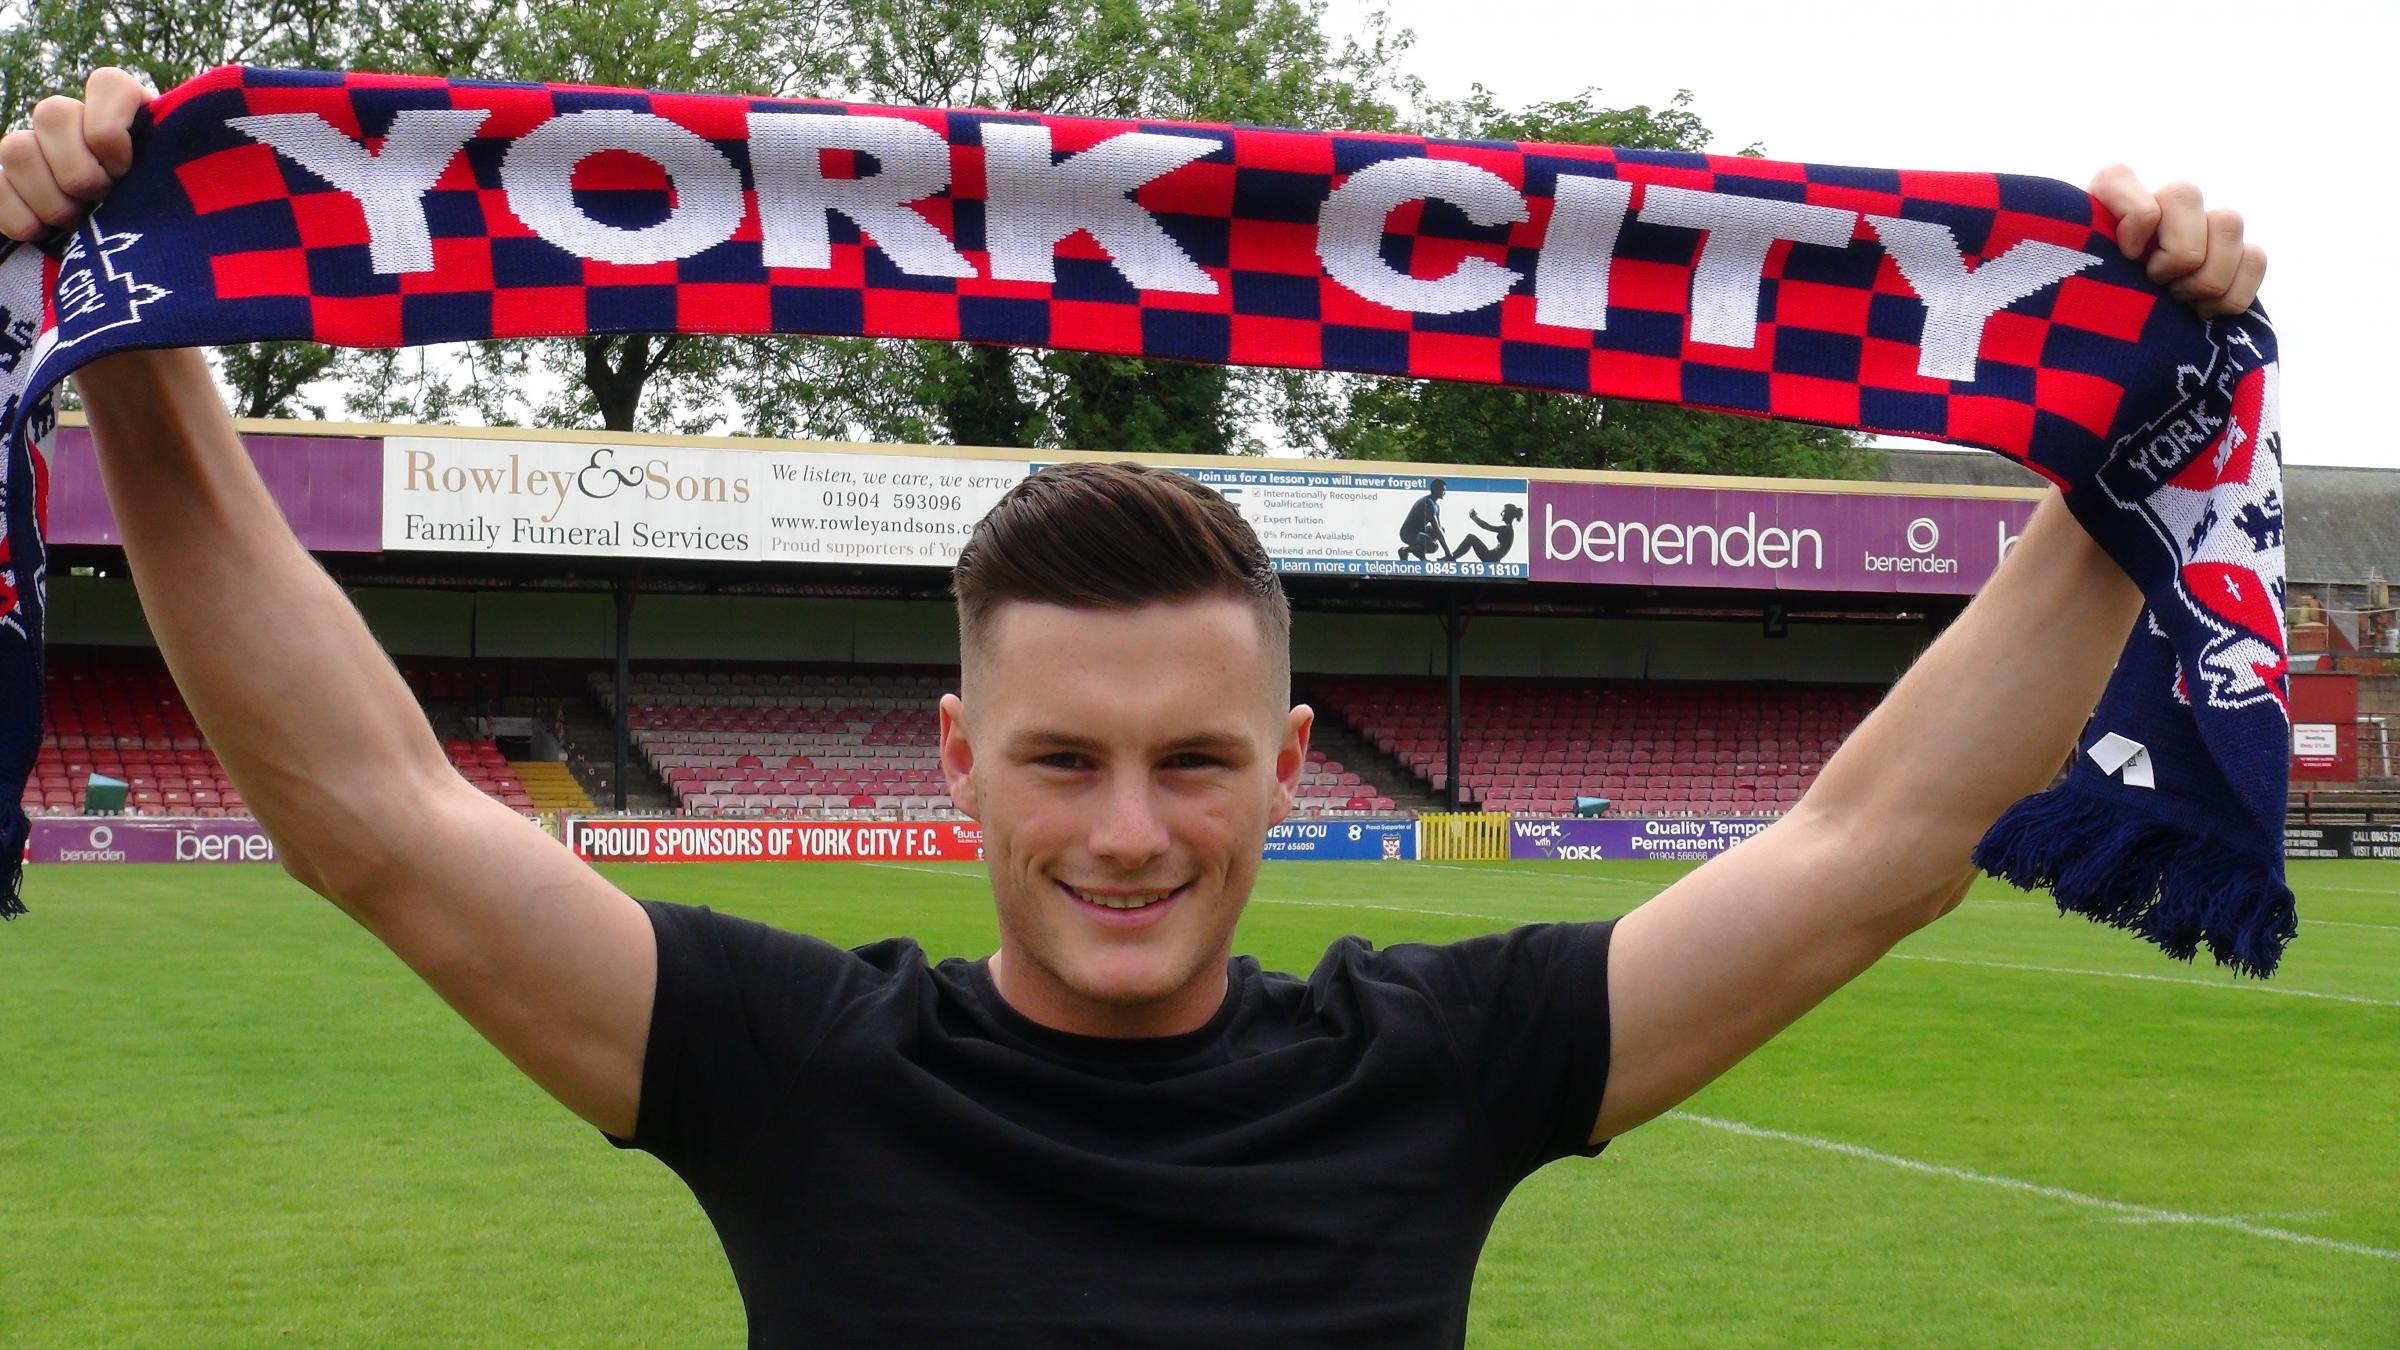 NEW RECRUIT: Macaulay Langstaff. Photo courtesy of York City Football Club